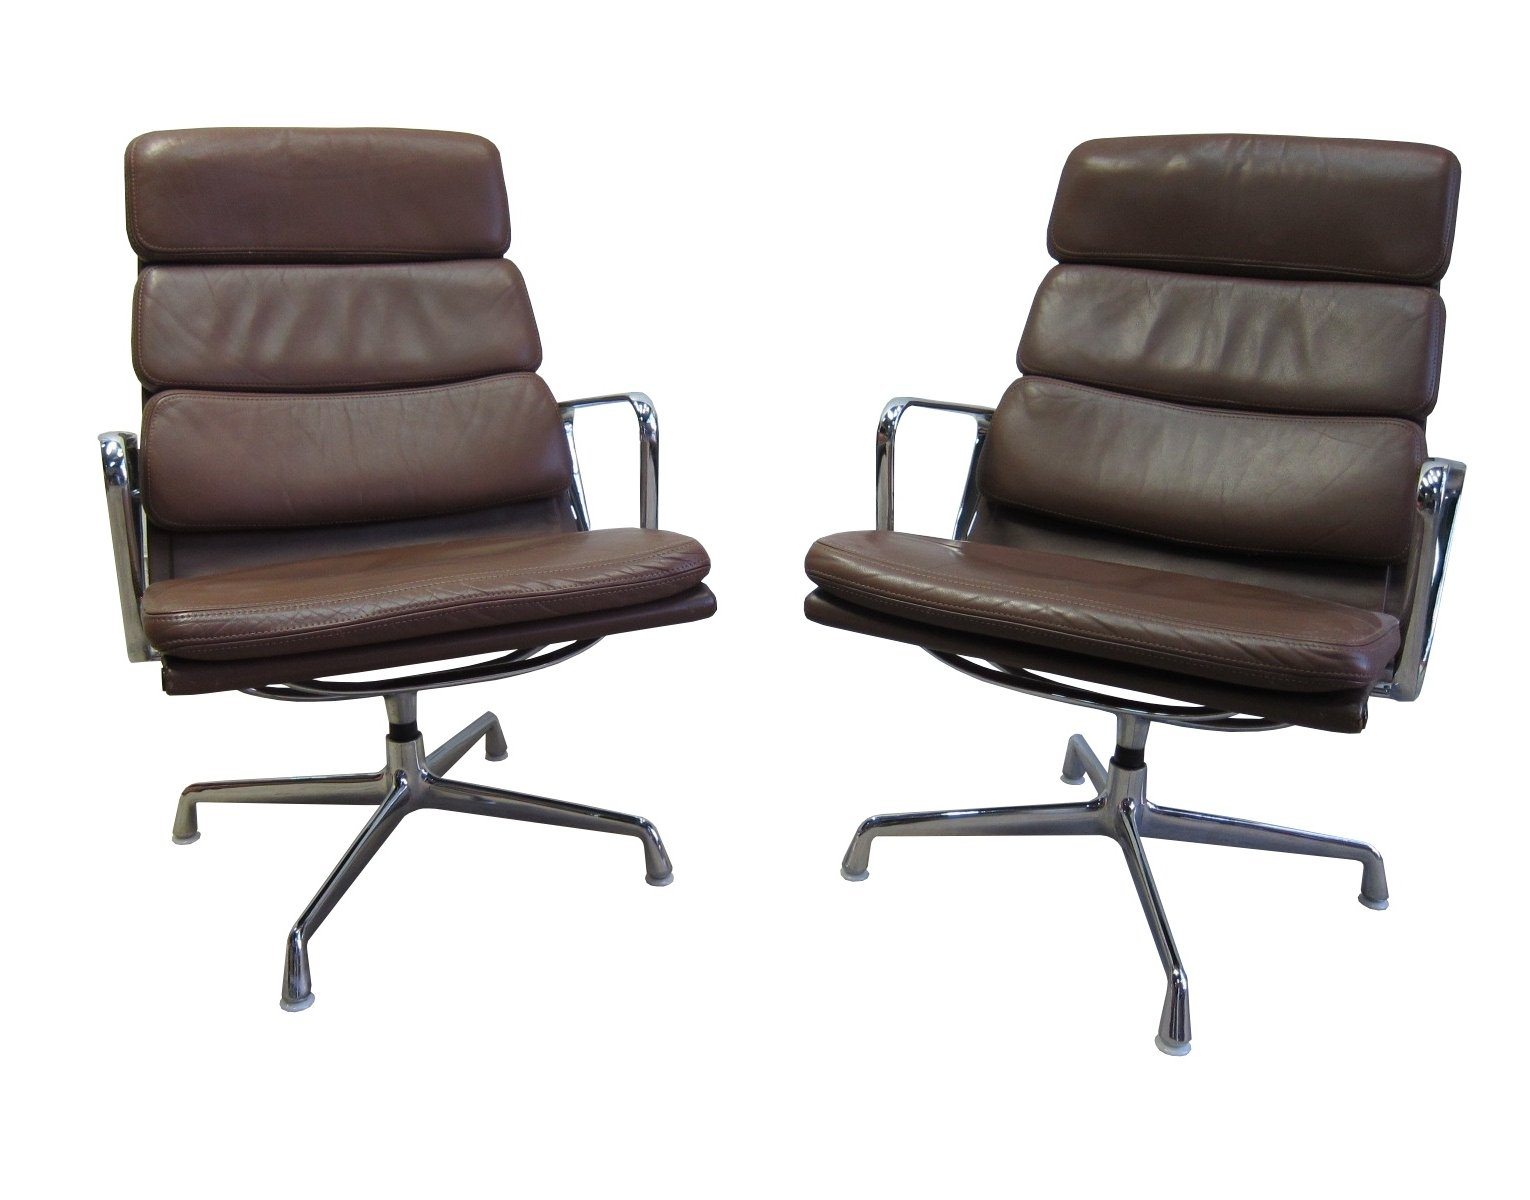 ea216 softpad lounge chairs by eames for herman miller by. Black Bedroom Furniture Sets. Home Design Ideas